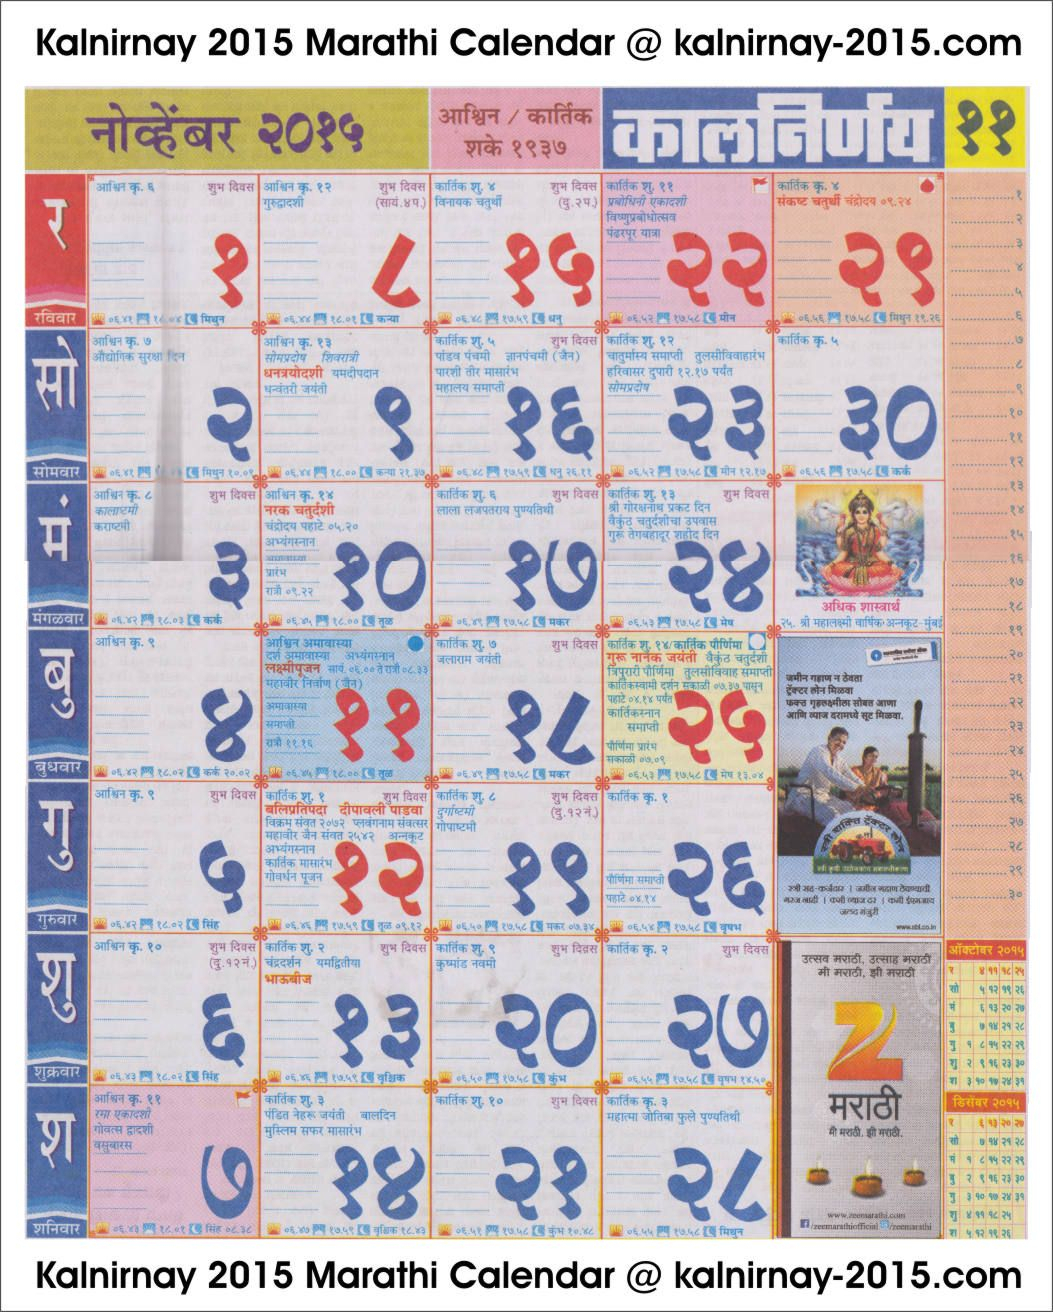 November 2015 Marathi Kalnirnay Calendar | Calendar March